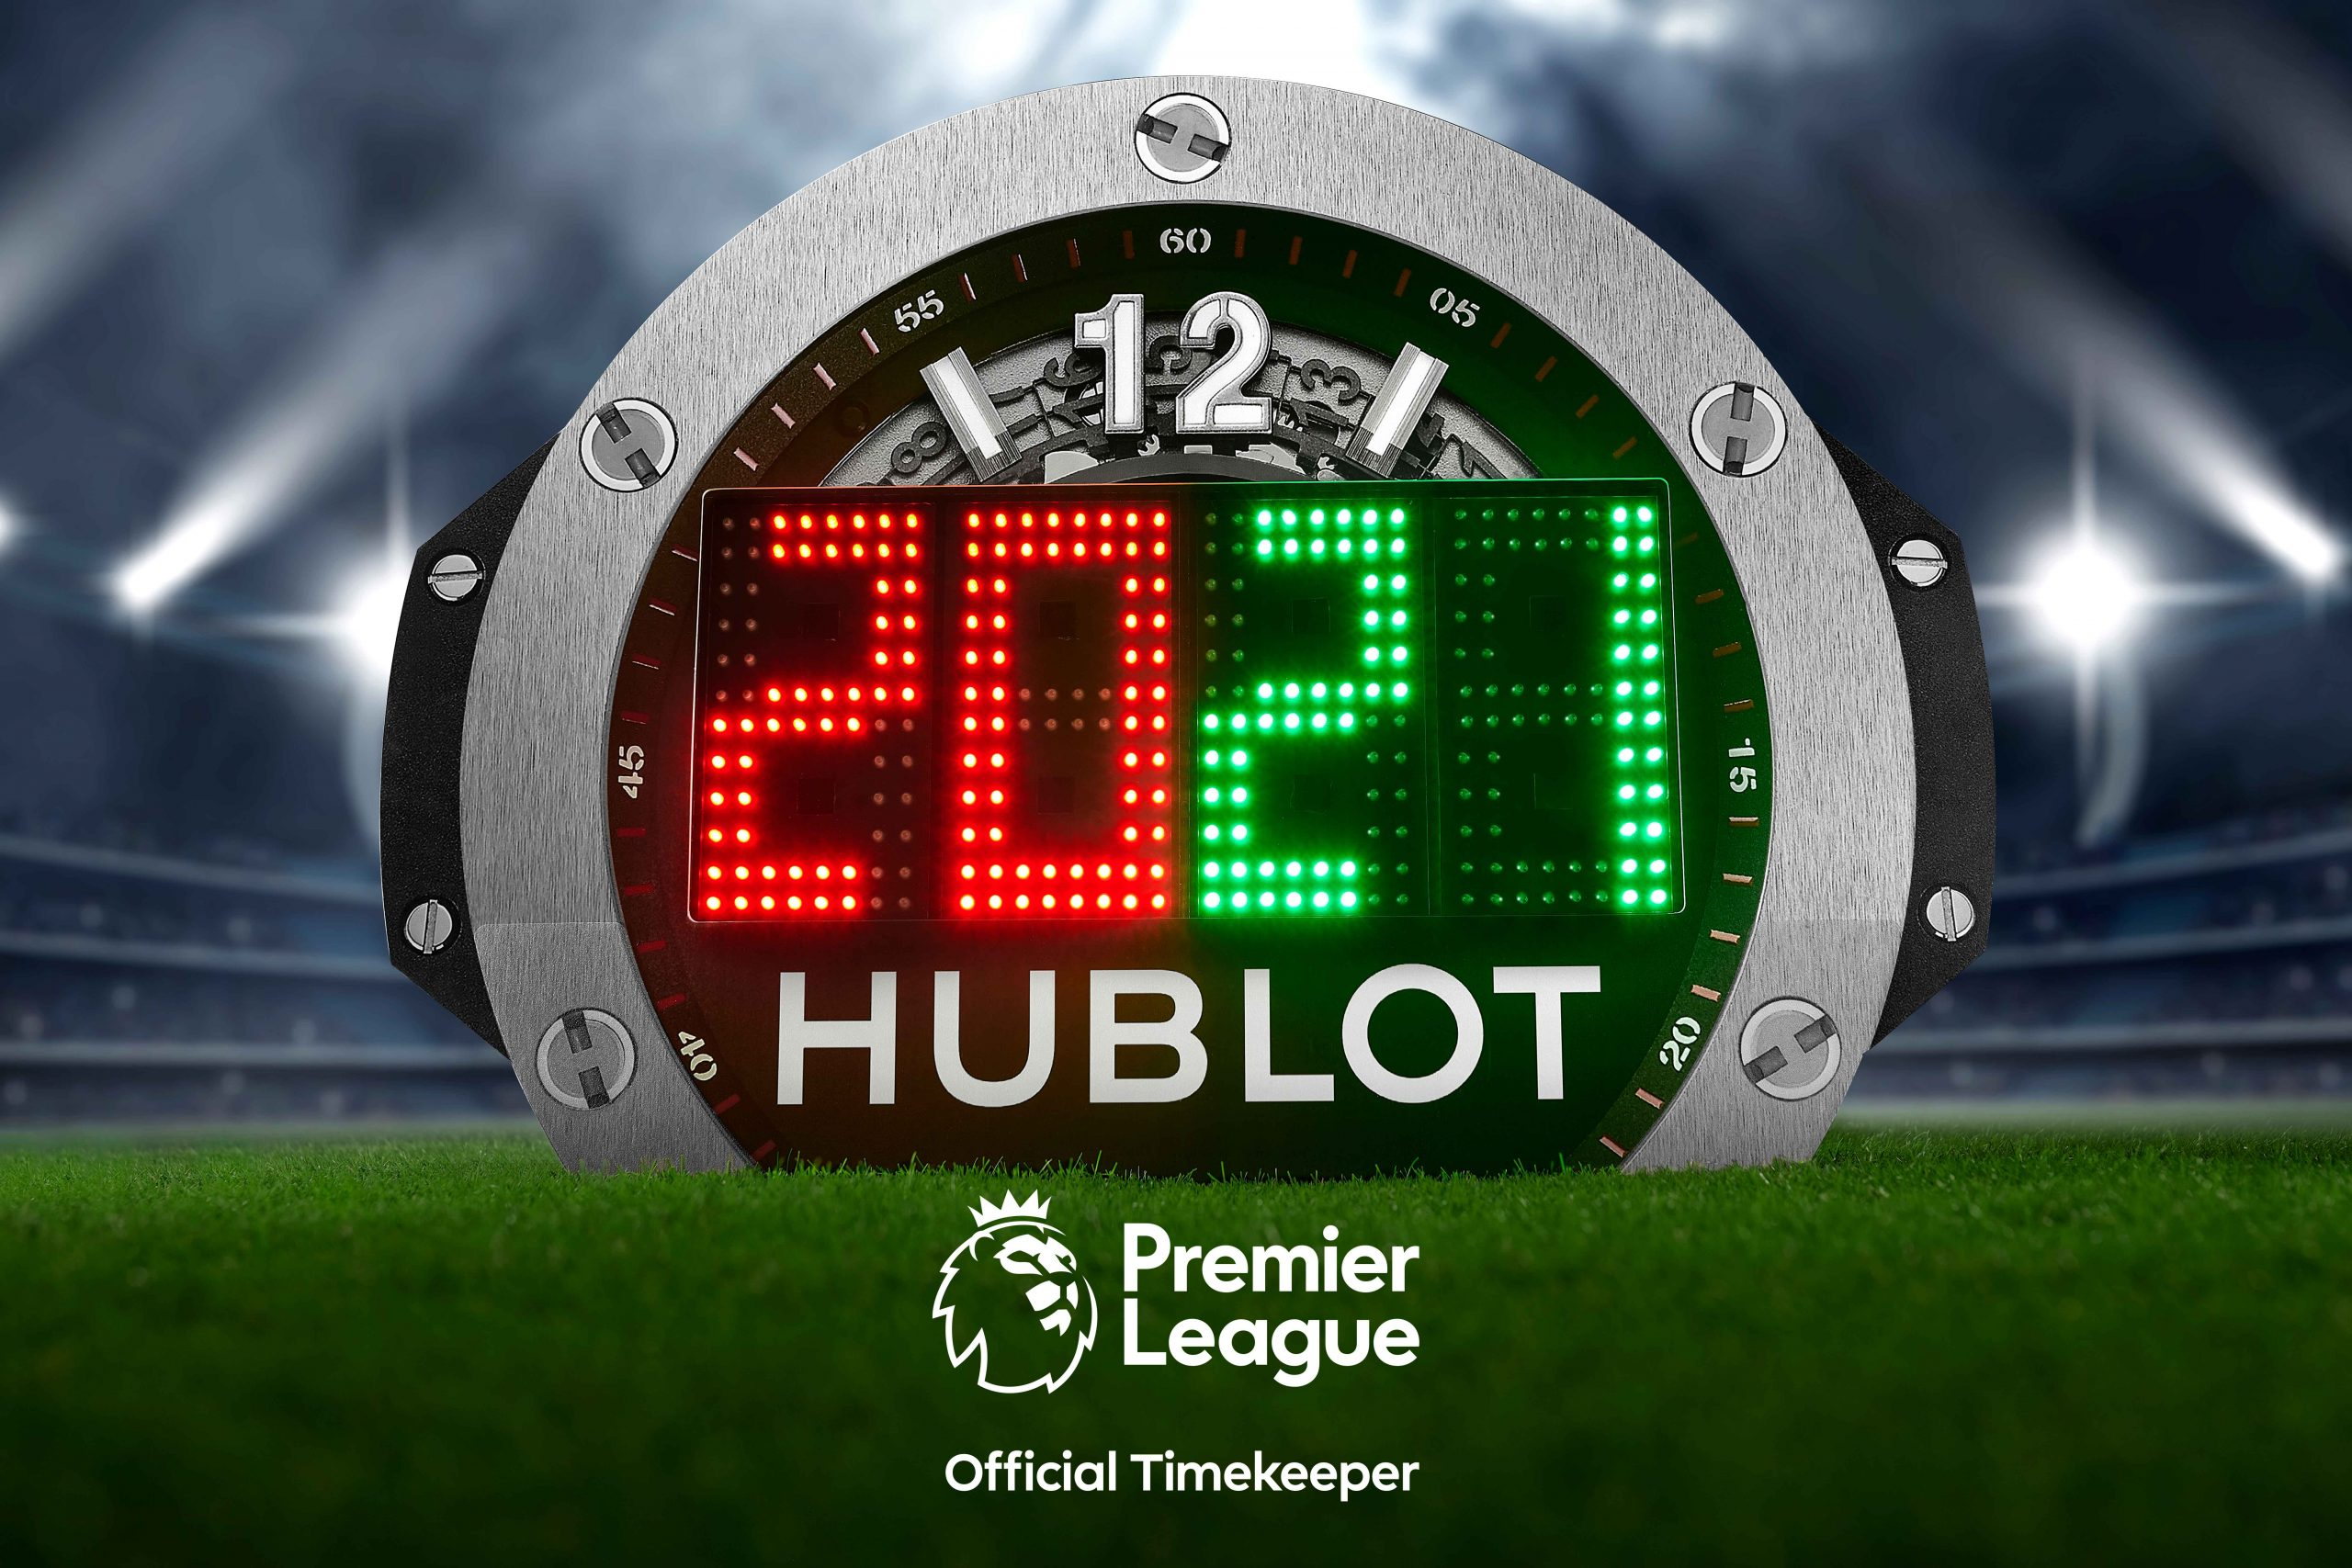 Premier League Official Timekeeper